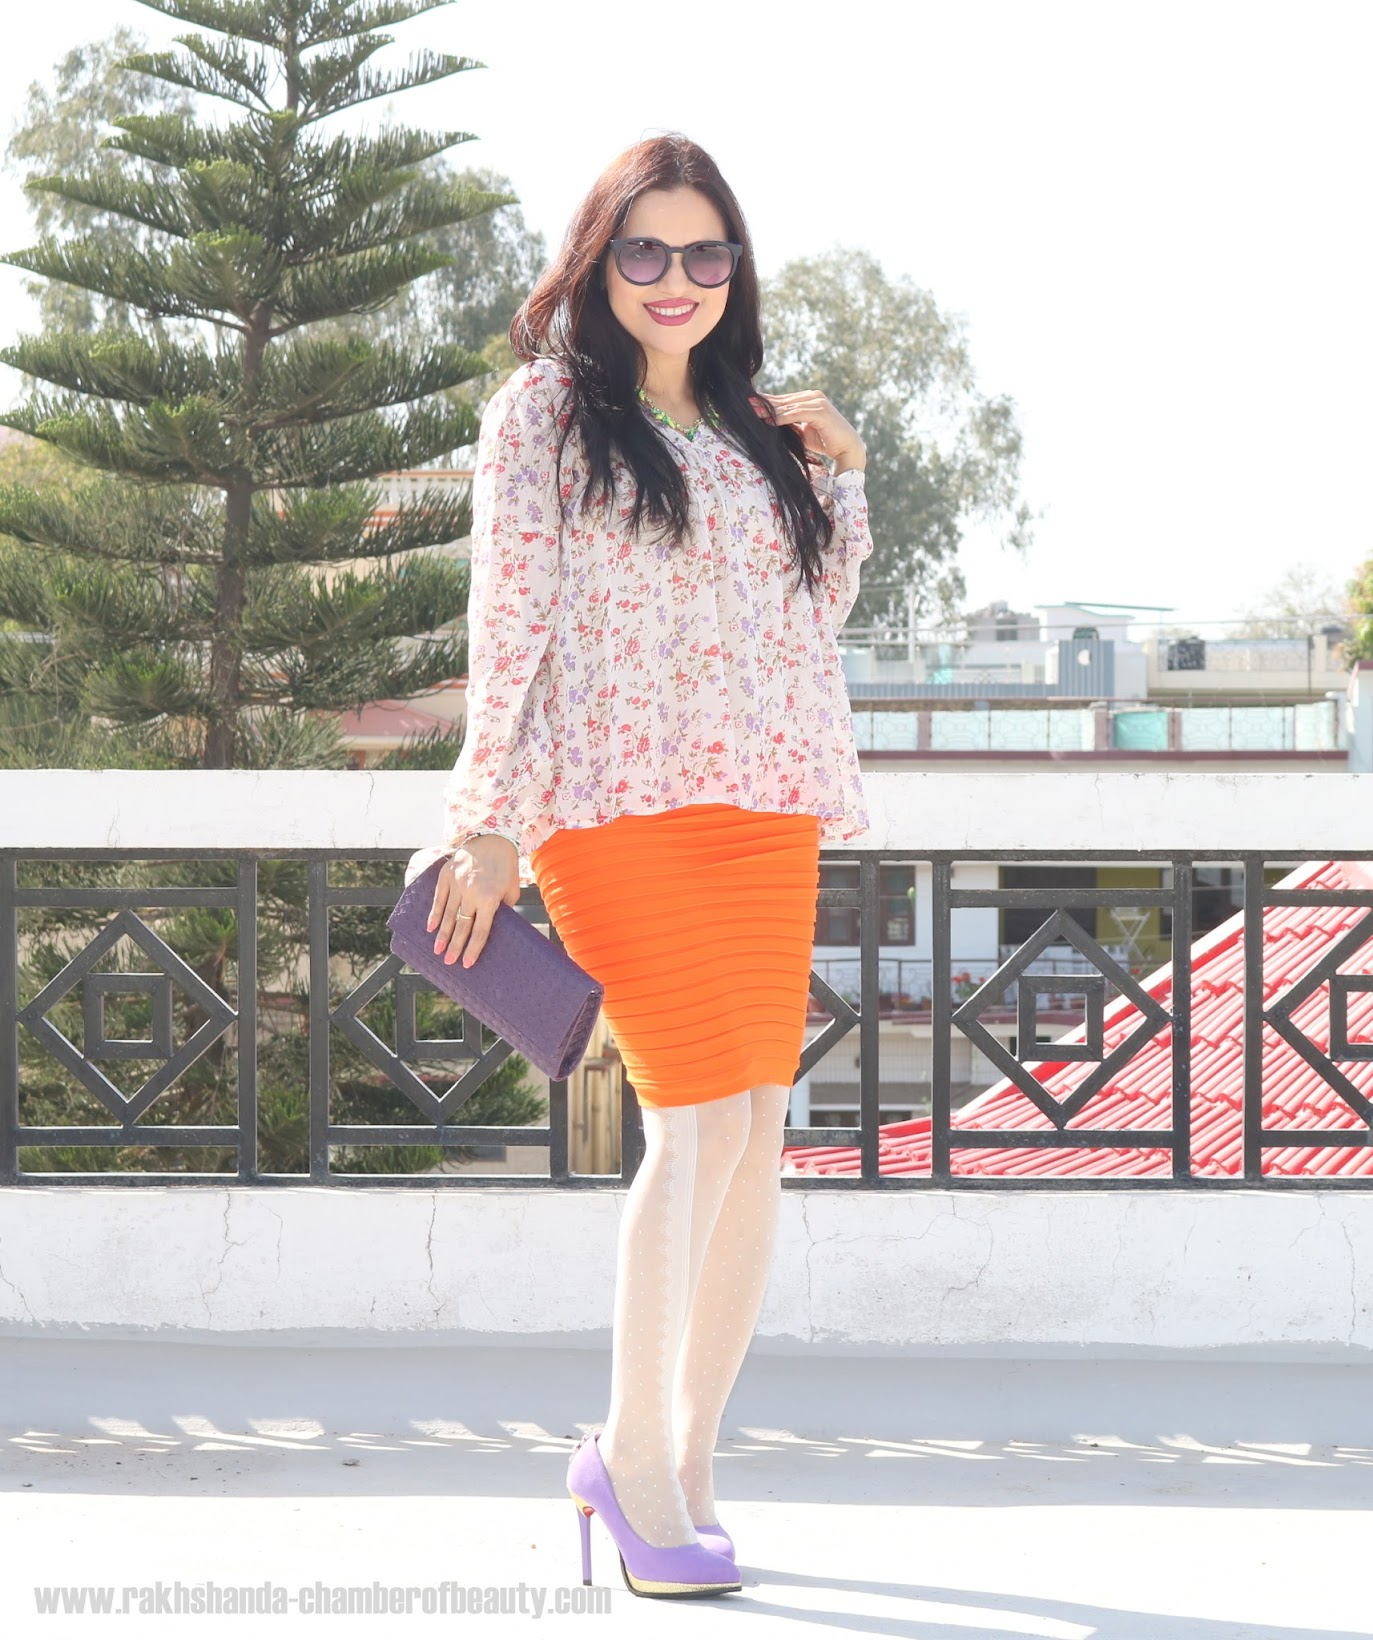 How to wear florals in spring, Floral prints for spring, Lara Karen Floral blouse from jabong.com, Online shopping from jabong